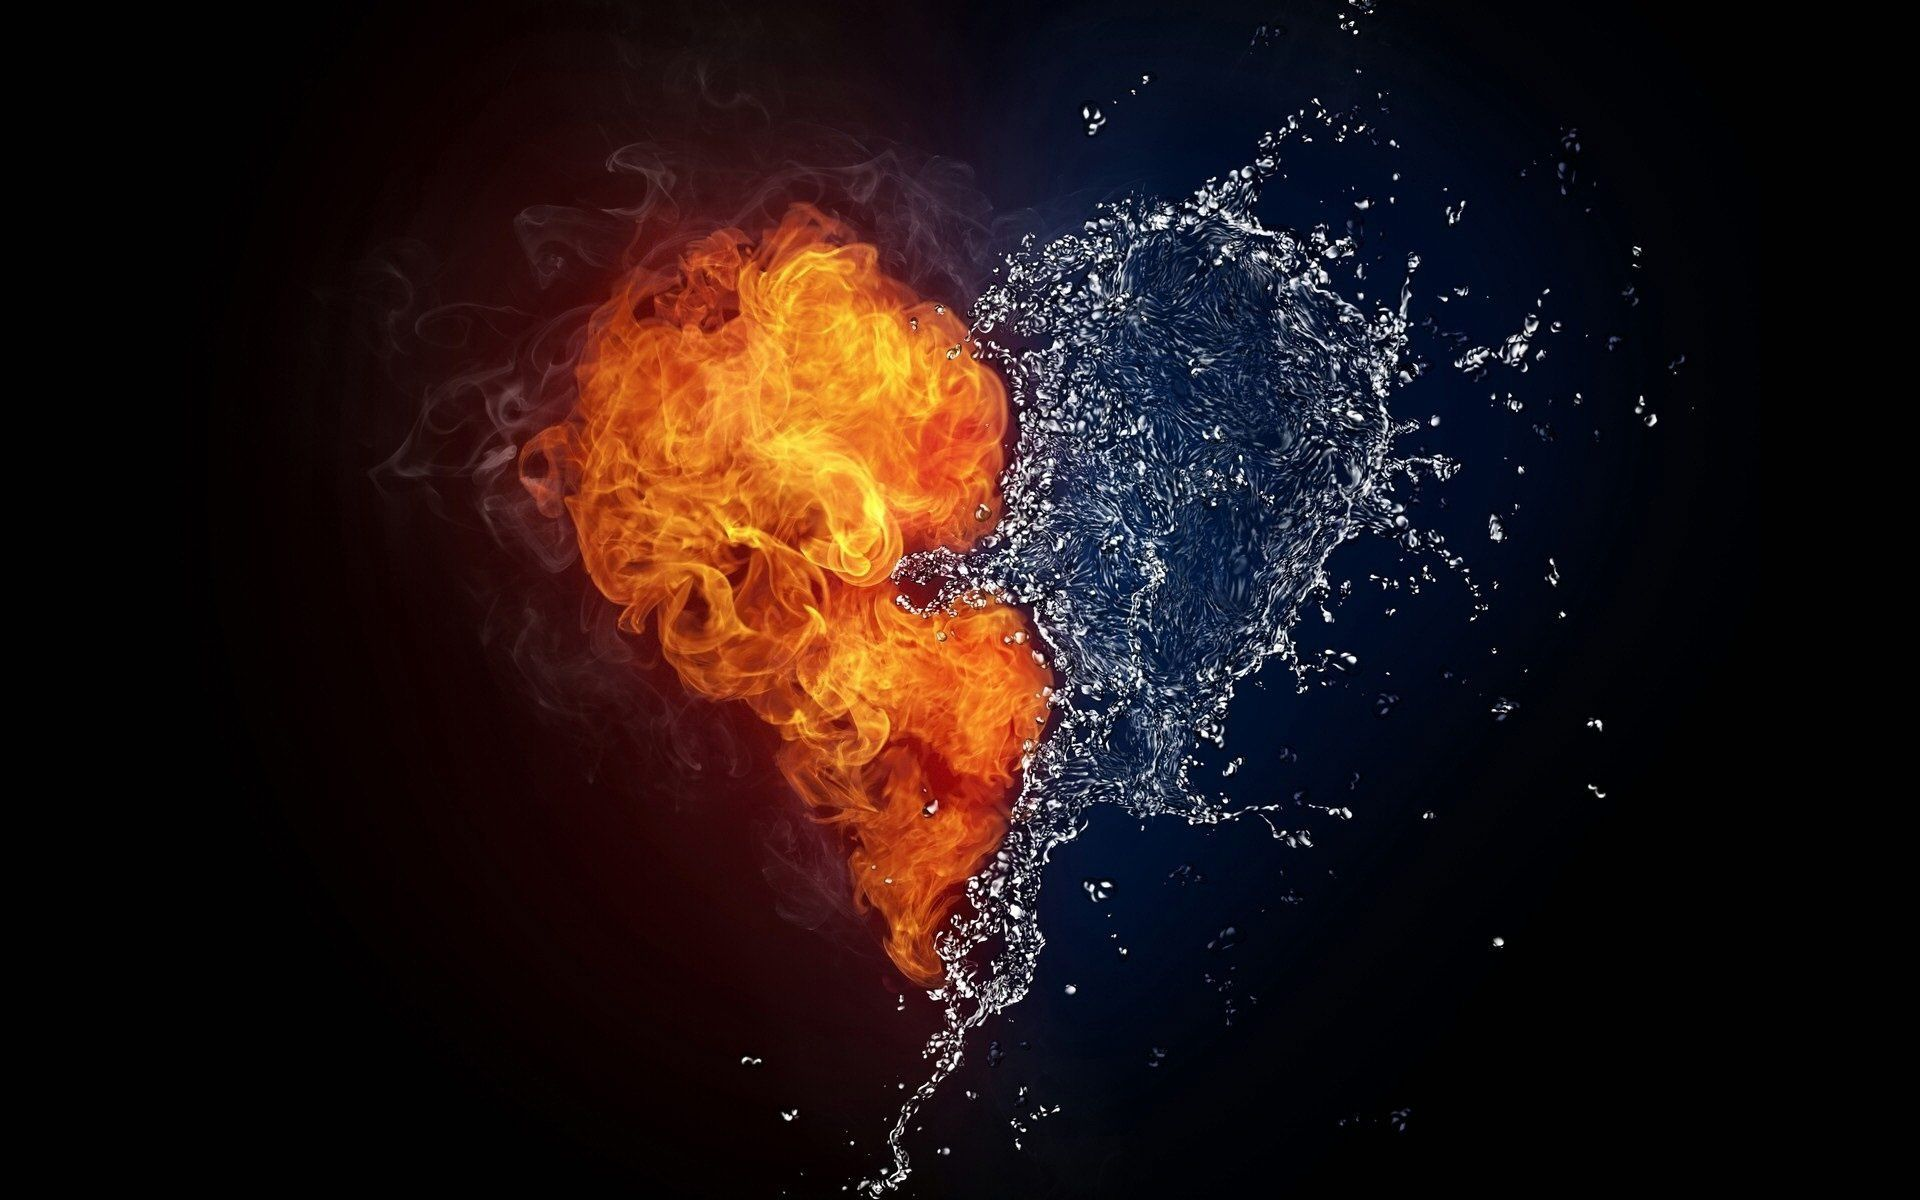 Fire And Water Love Scorpio means water Leo means fire 3